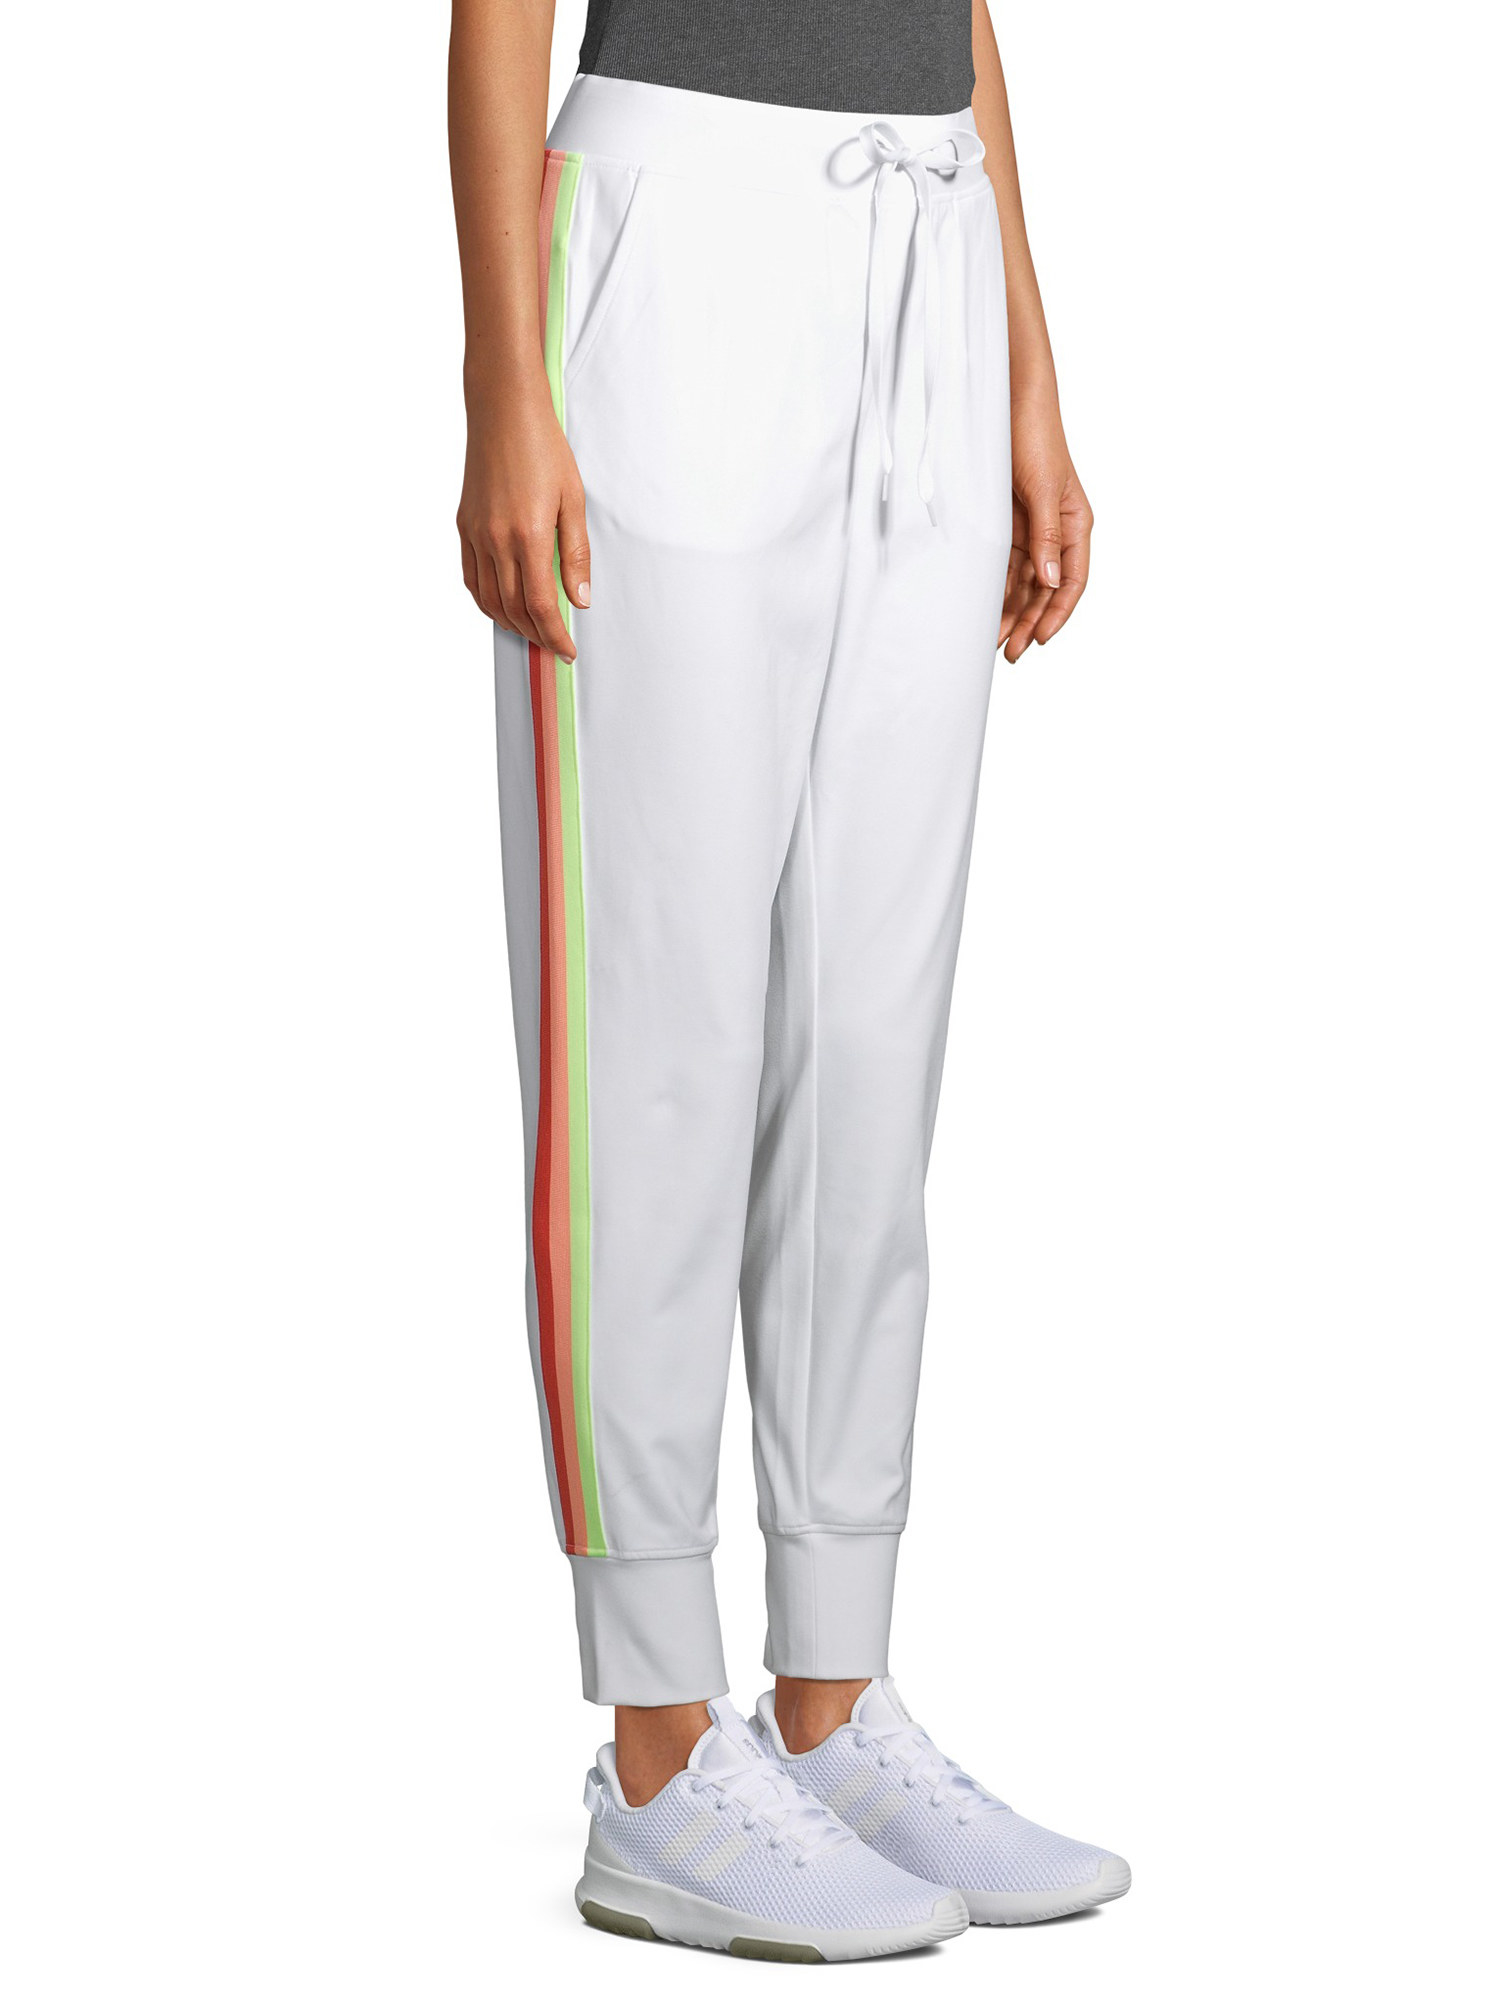 The white sweatpants with rainbow side stripes